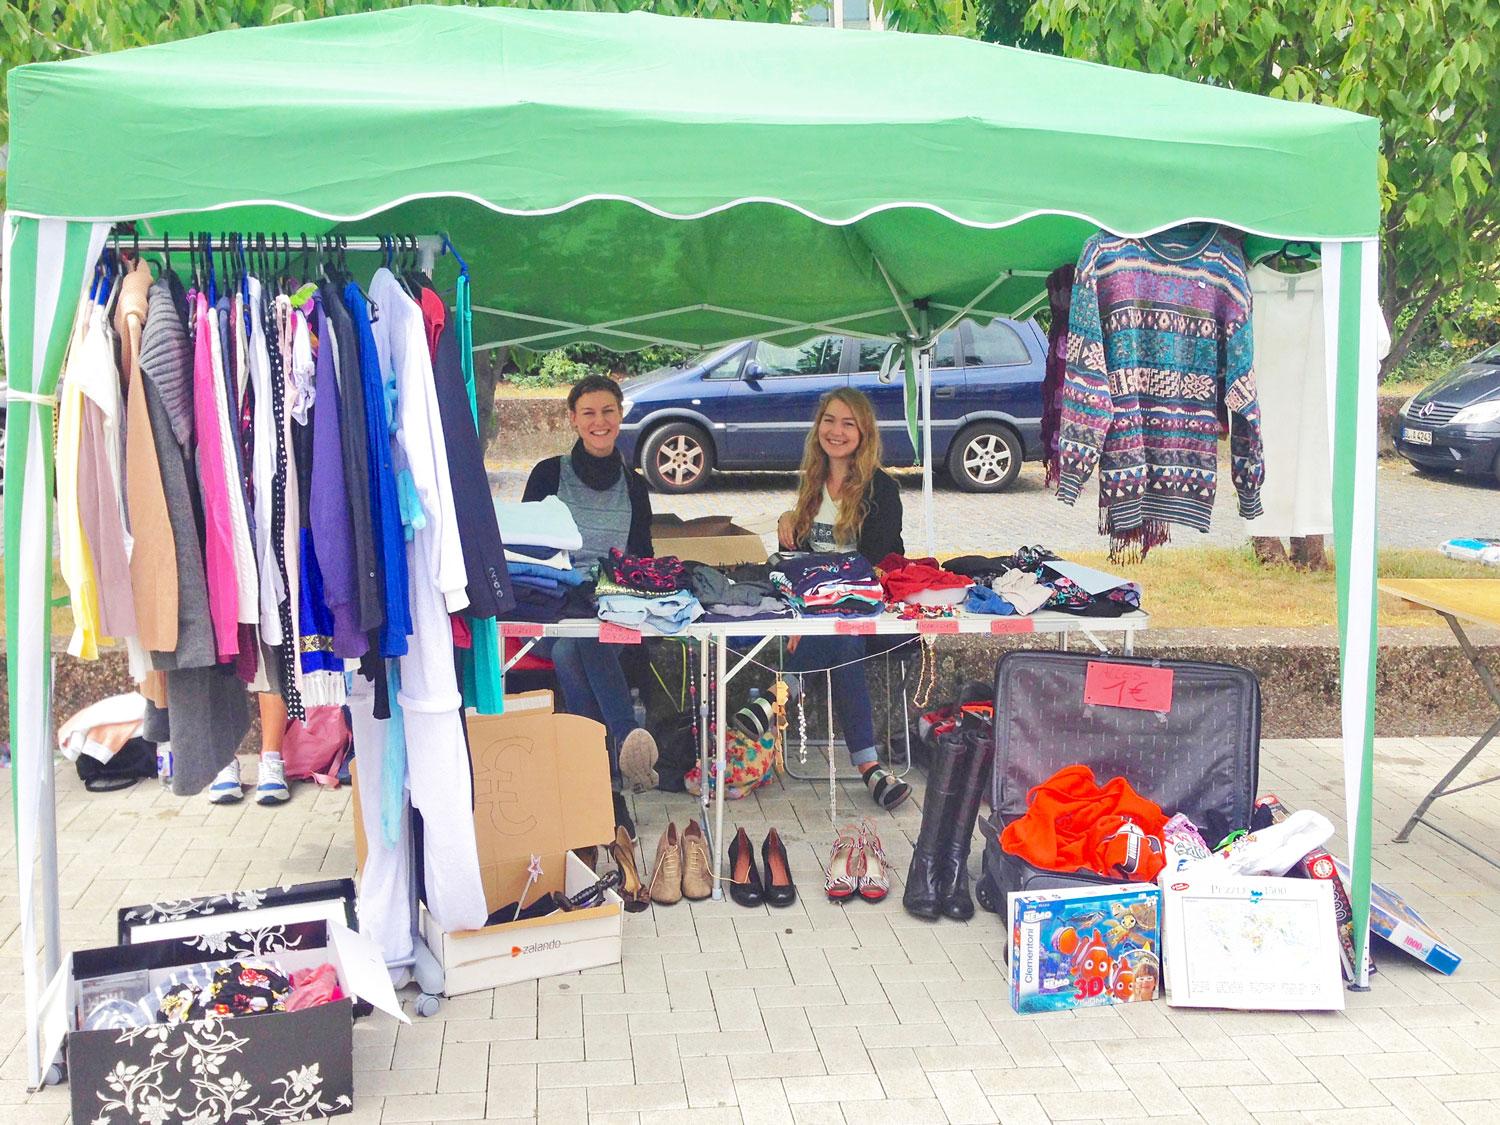 Sisters at flea market on bank of Rhine in Cologne, Germany